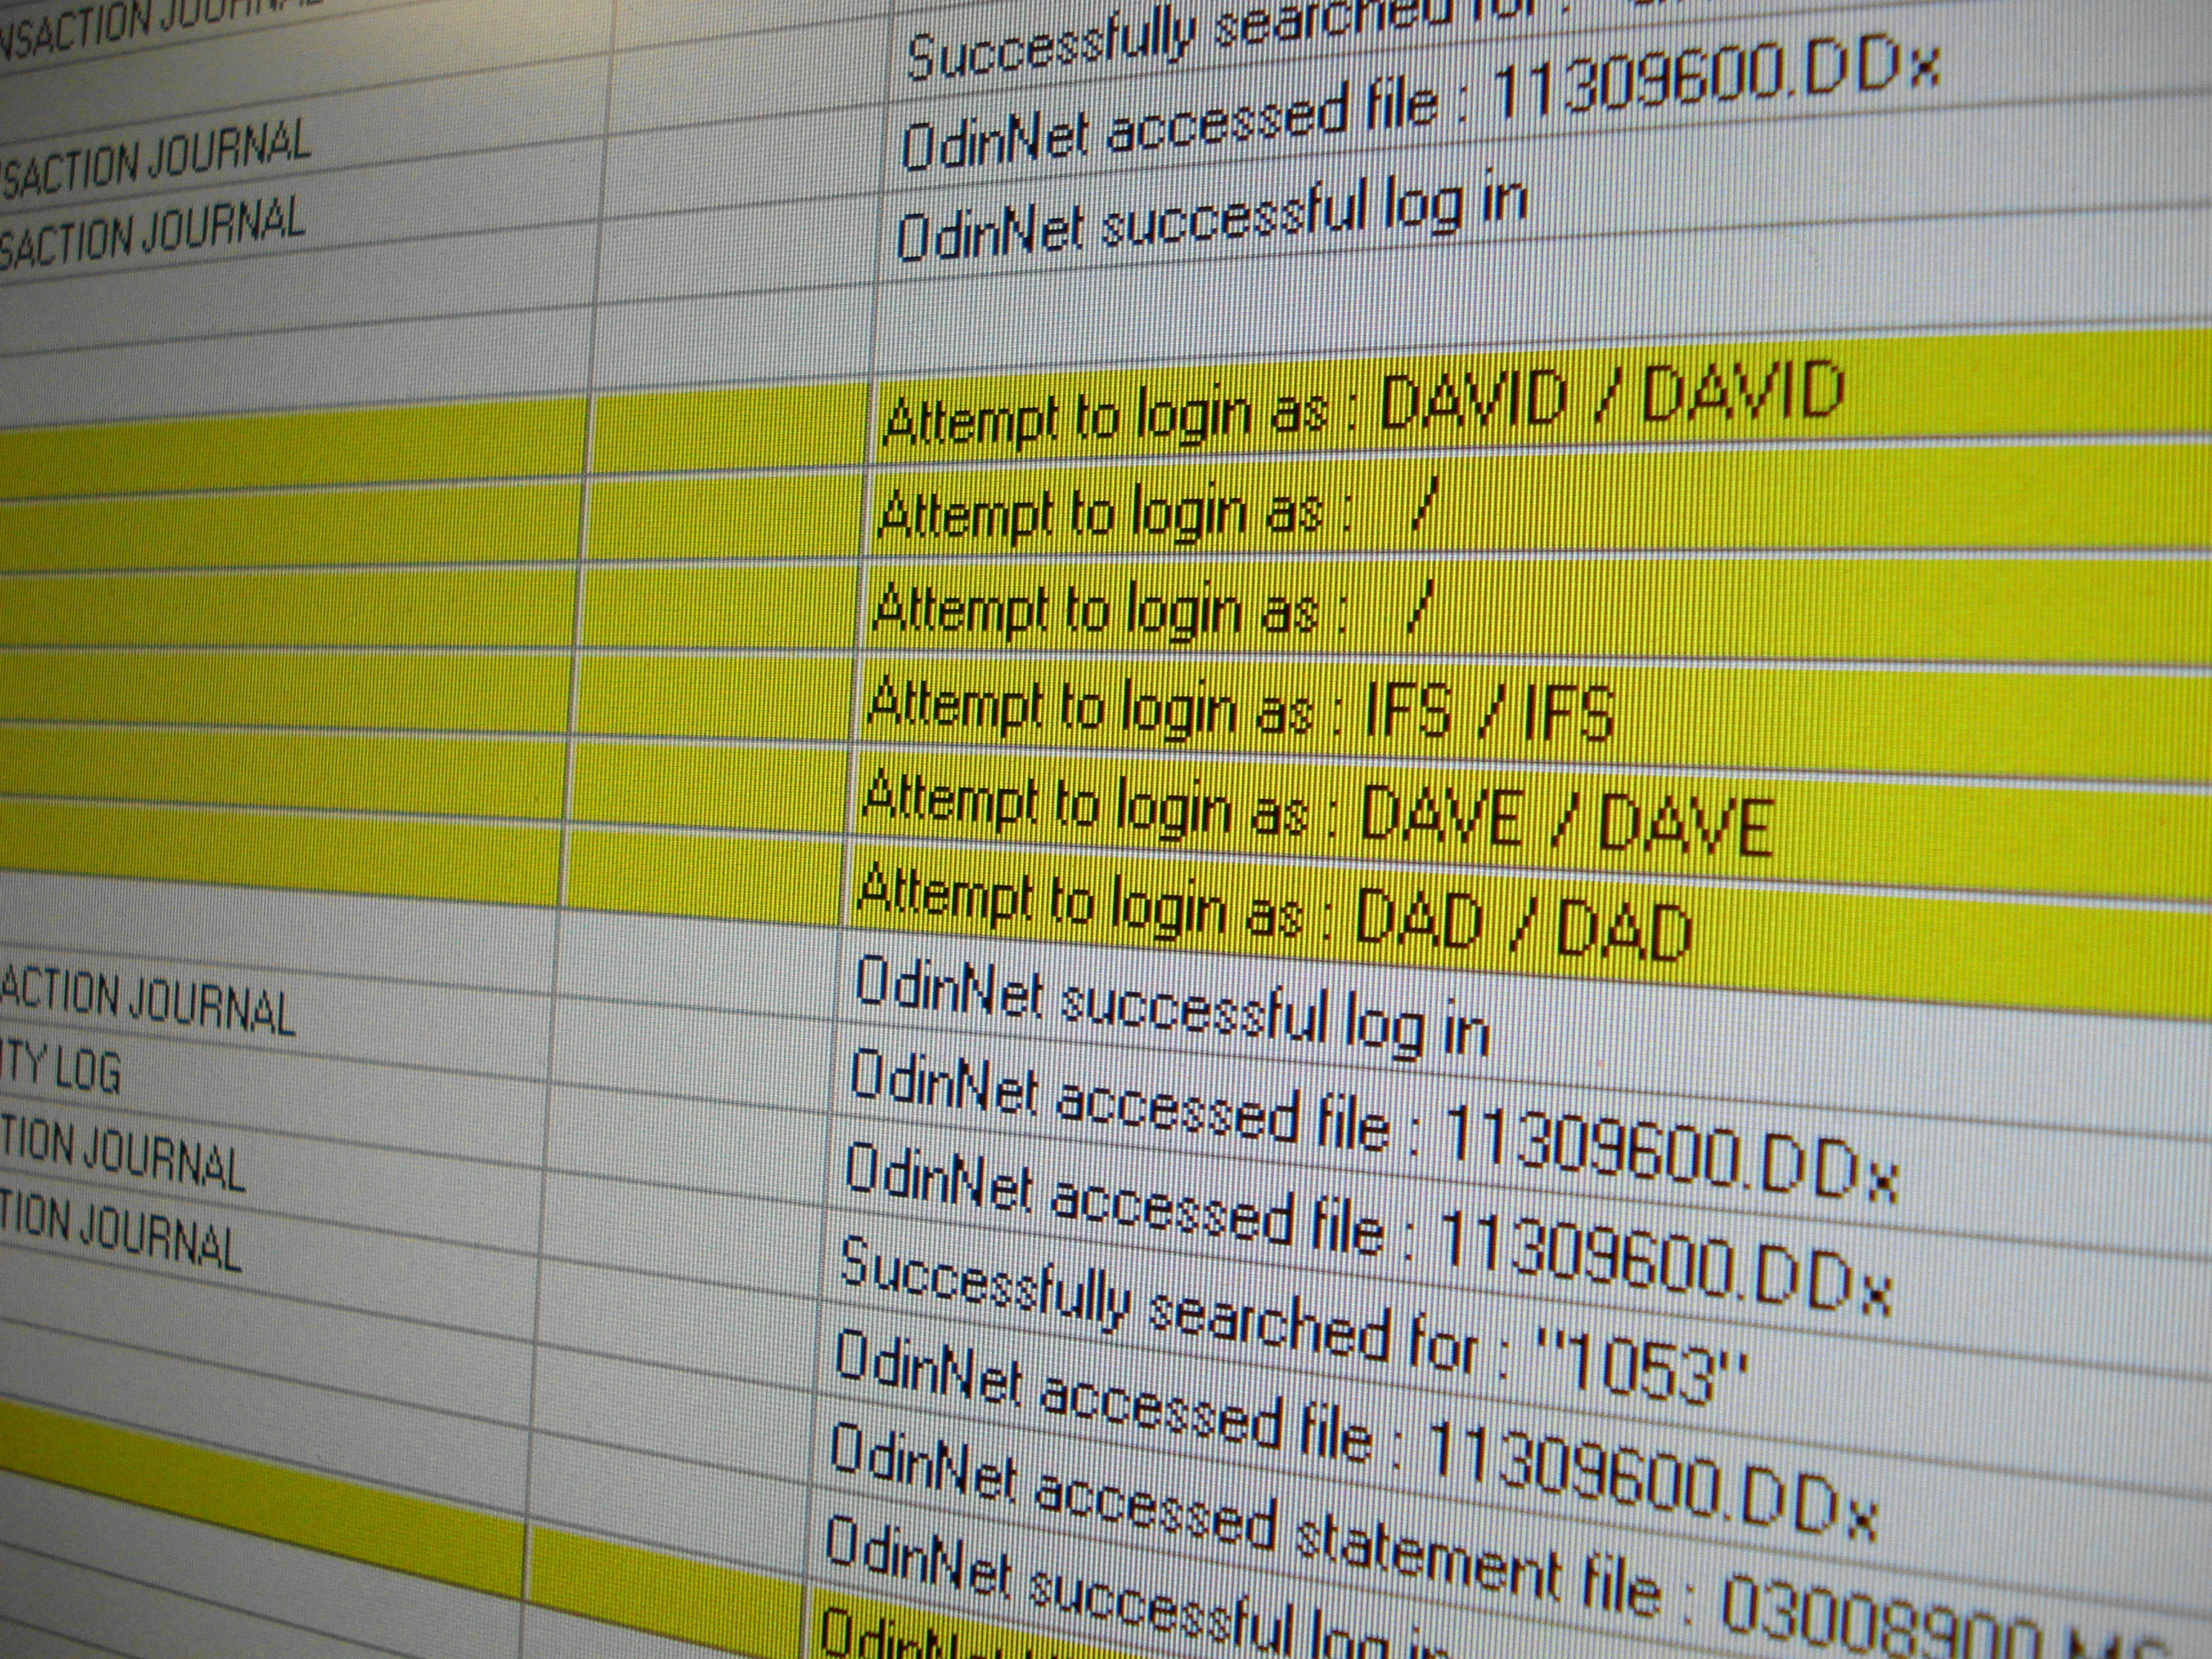 OdinSQL Audit Logs